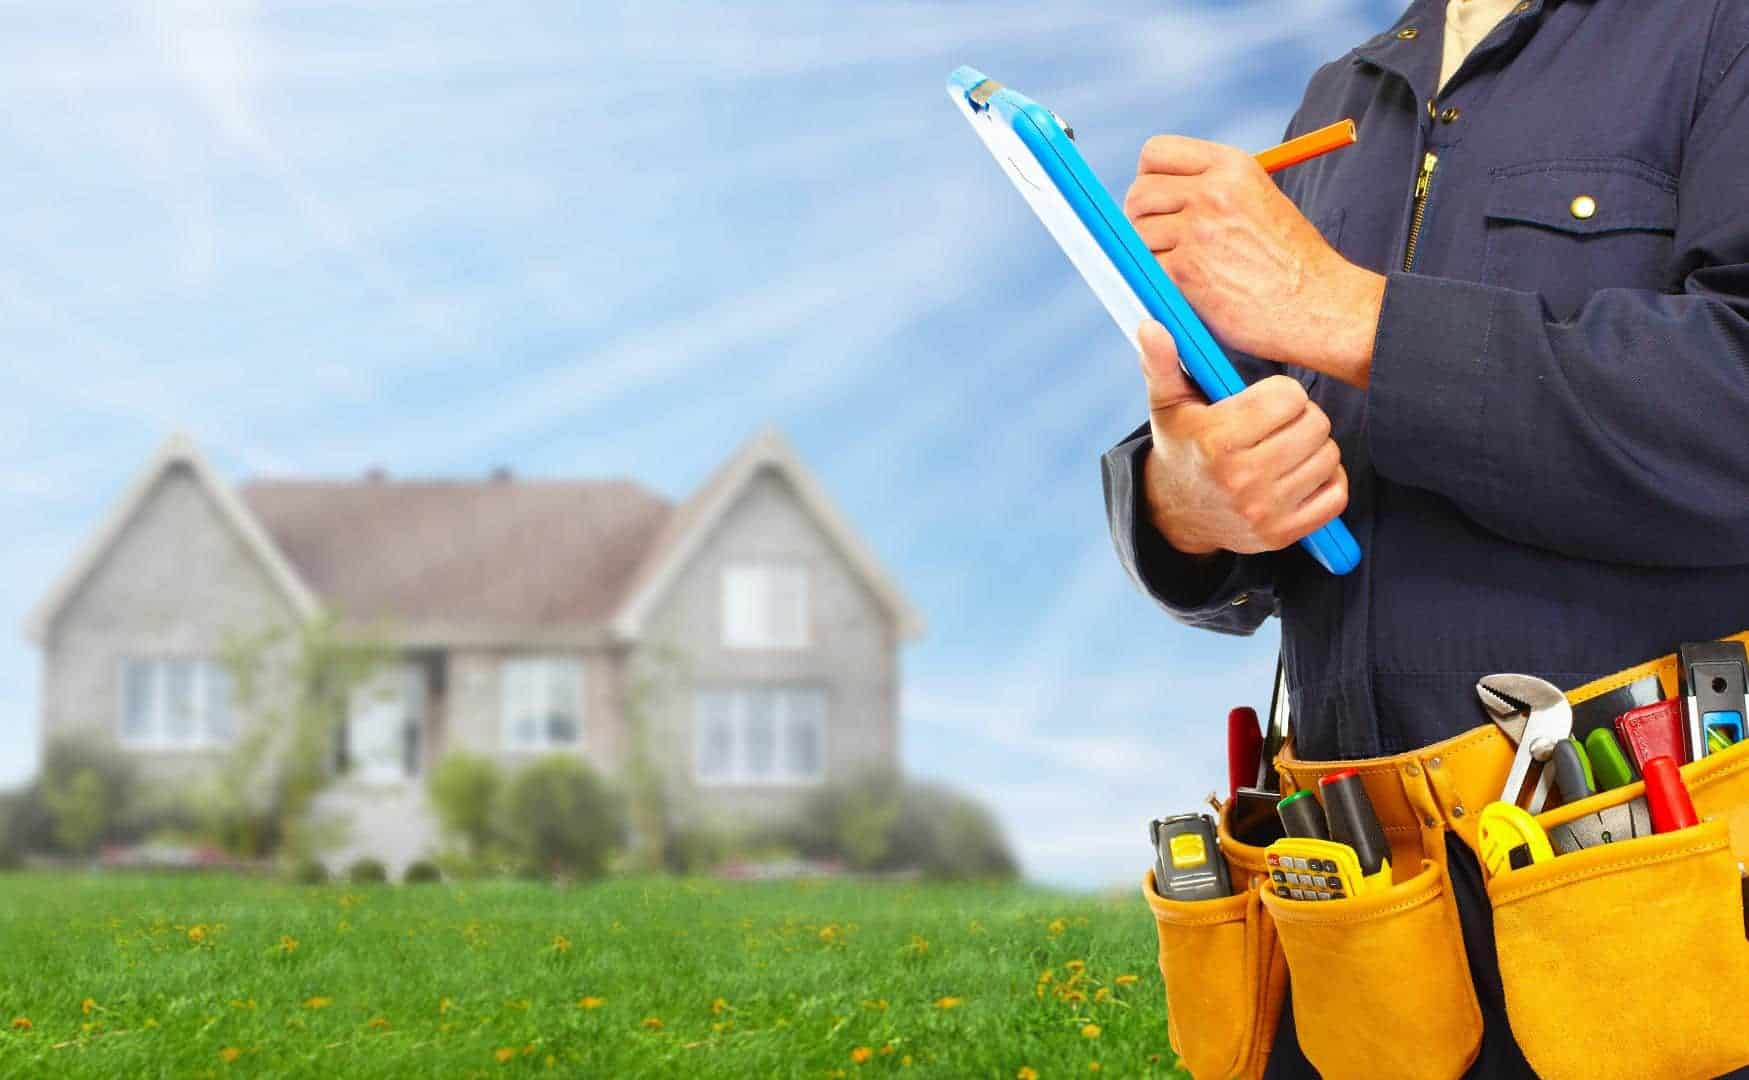 Practical Tips for Home Maintenance